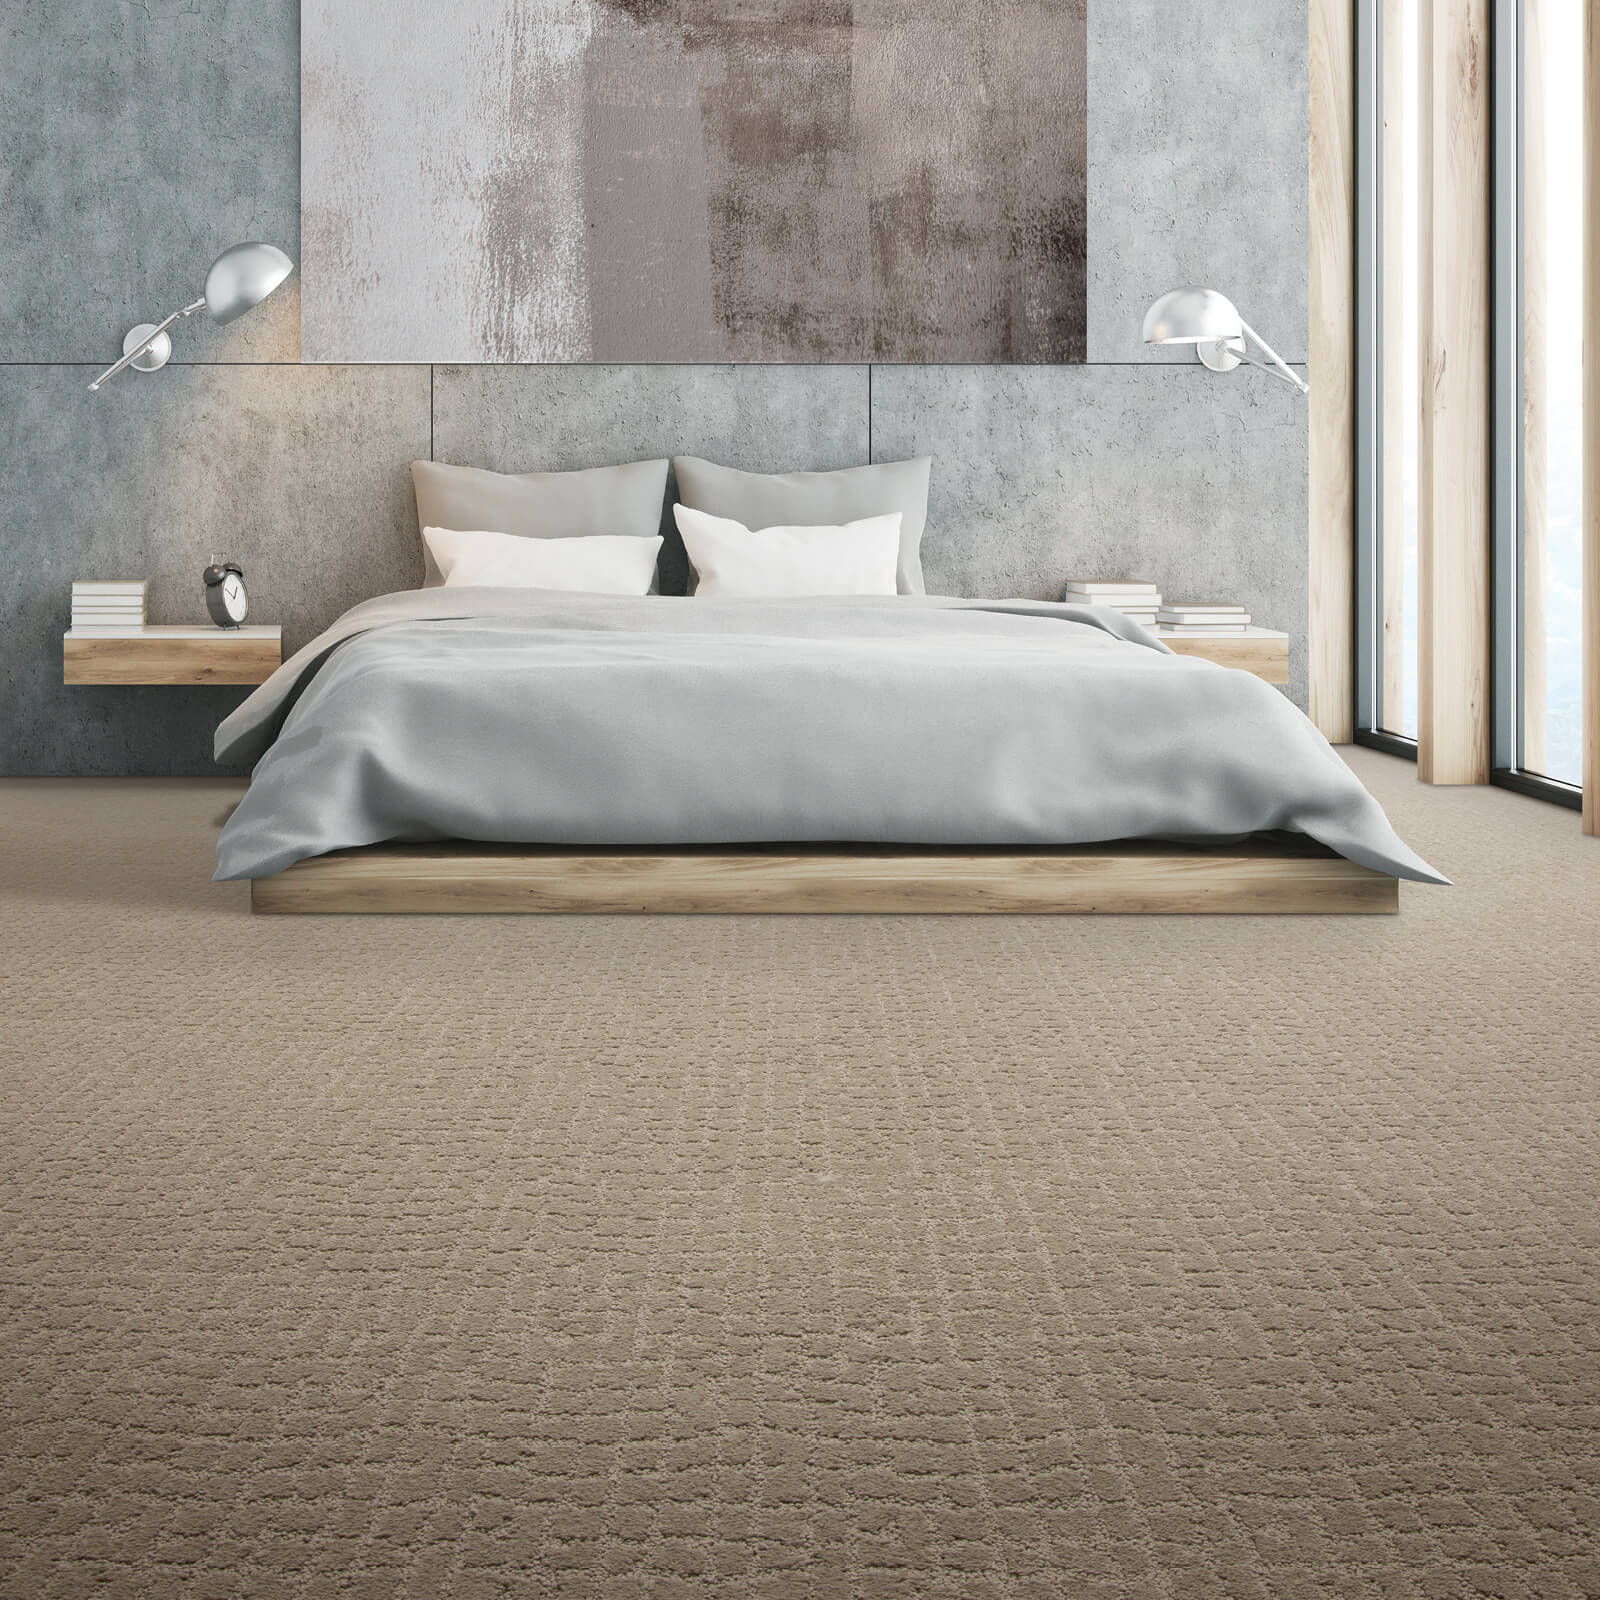 Spacious bedroom with carpet floor | Dolphin Carpet & Tile